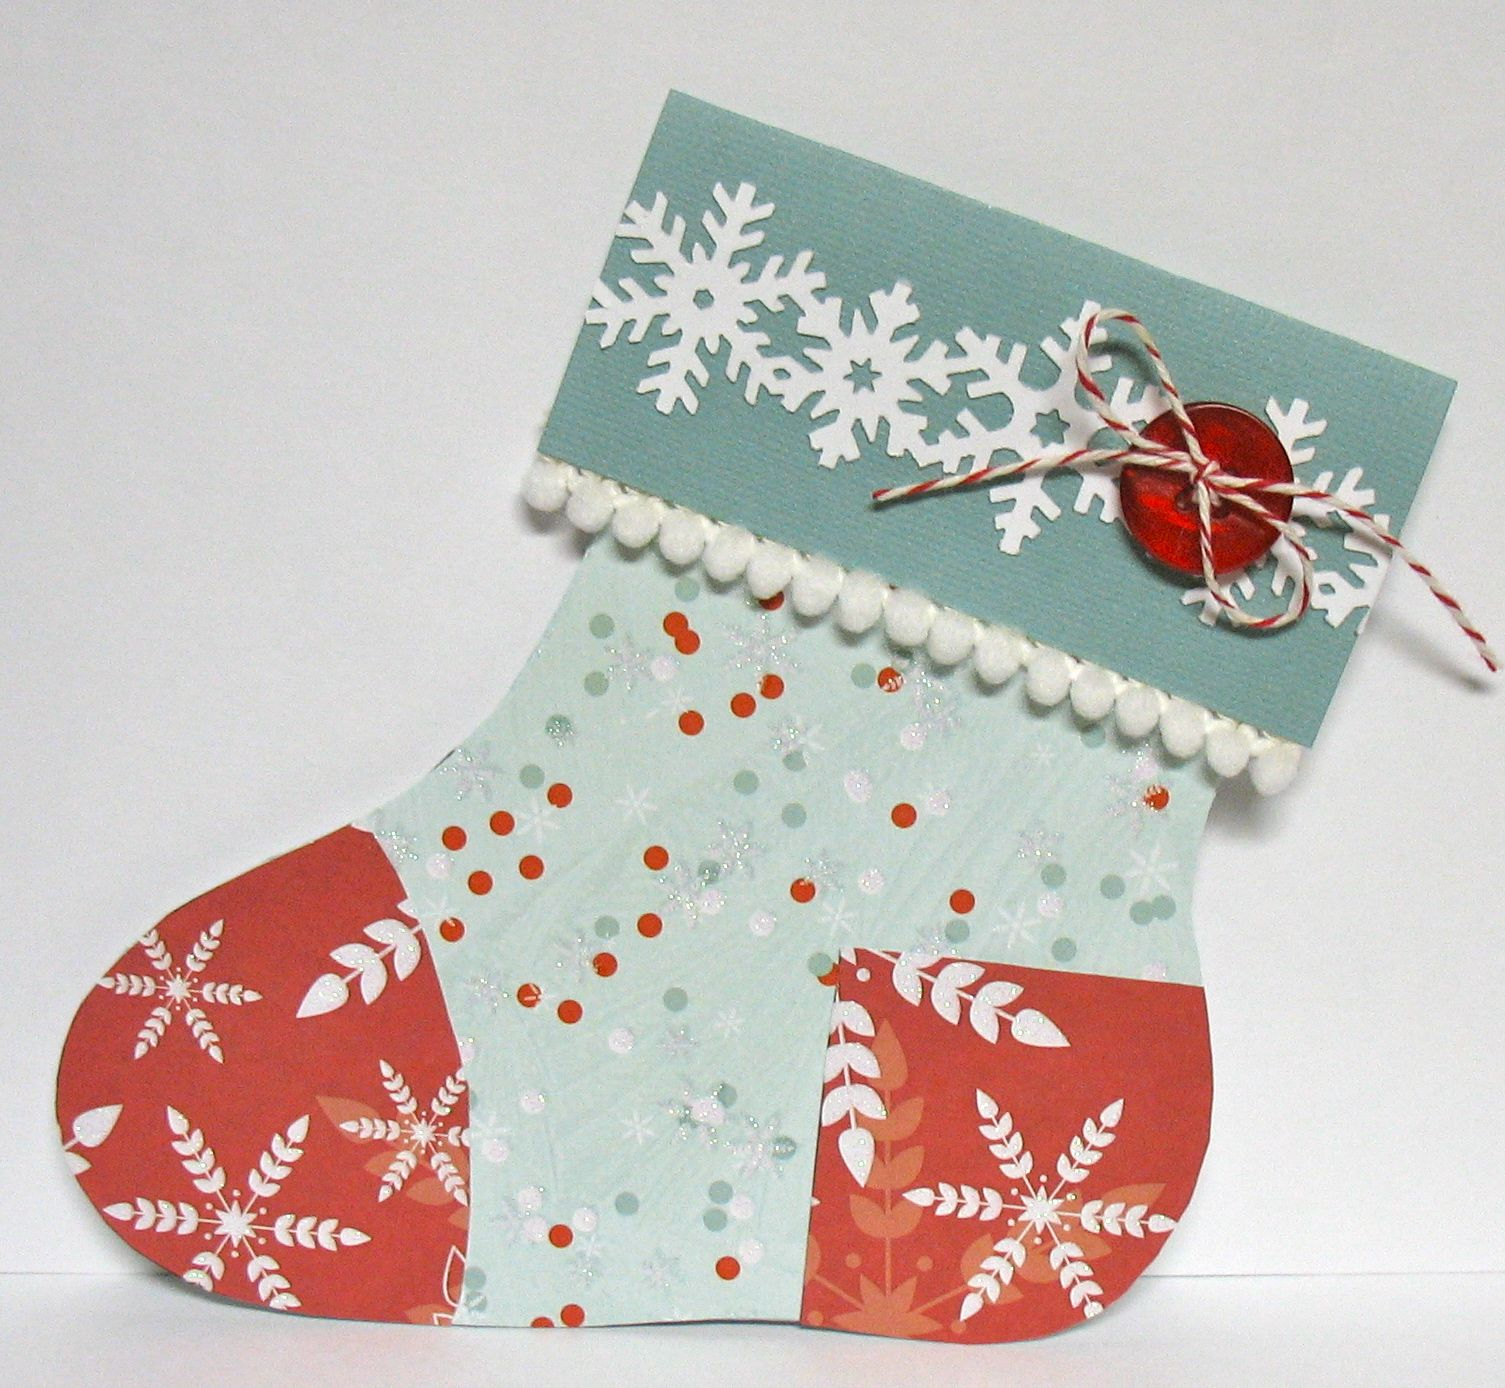 Cullen-ary Creations: Stocking Gift Card Holder